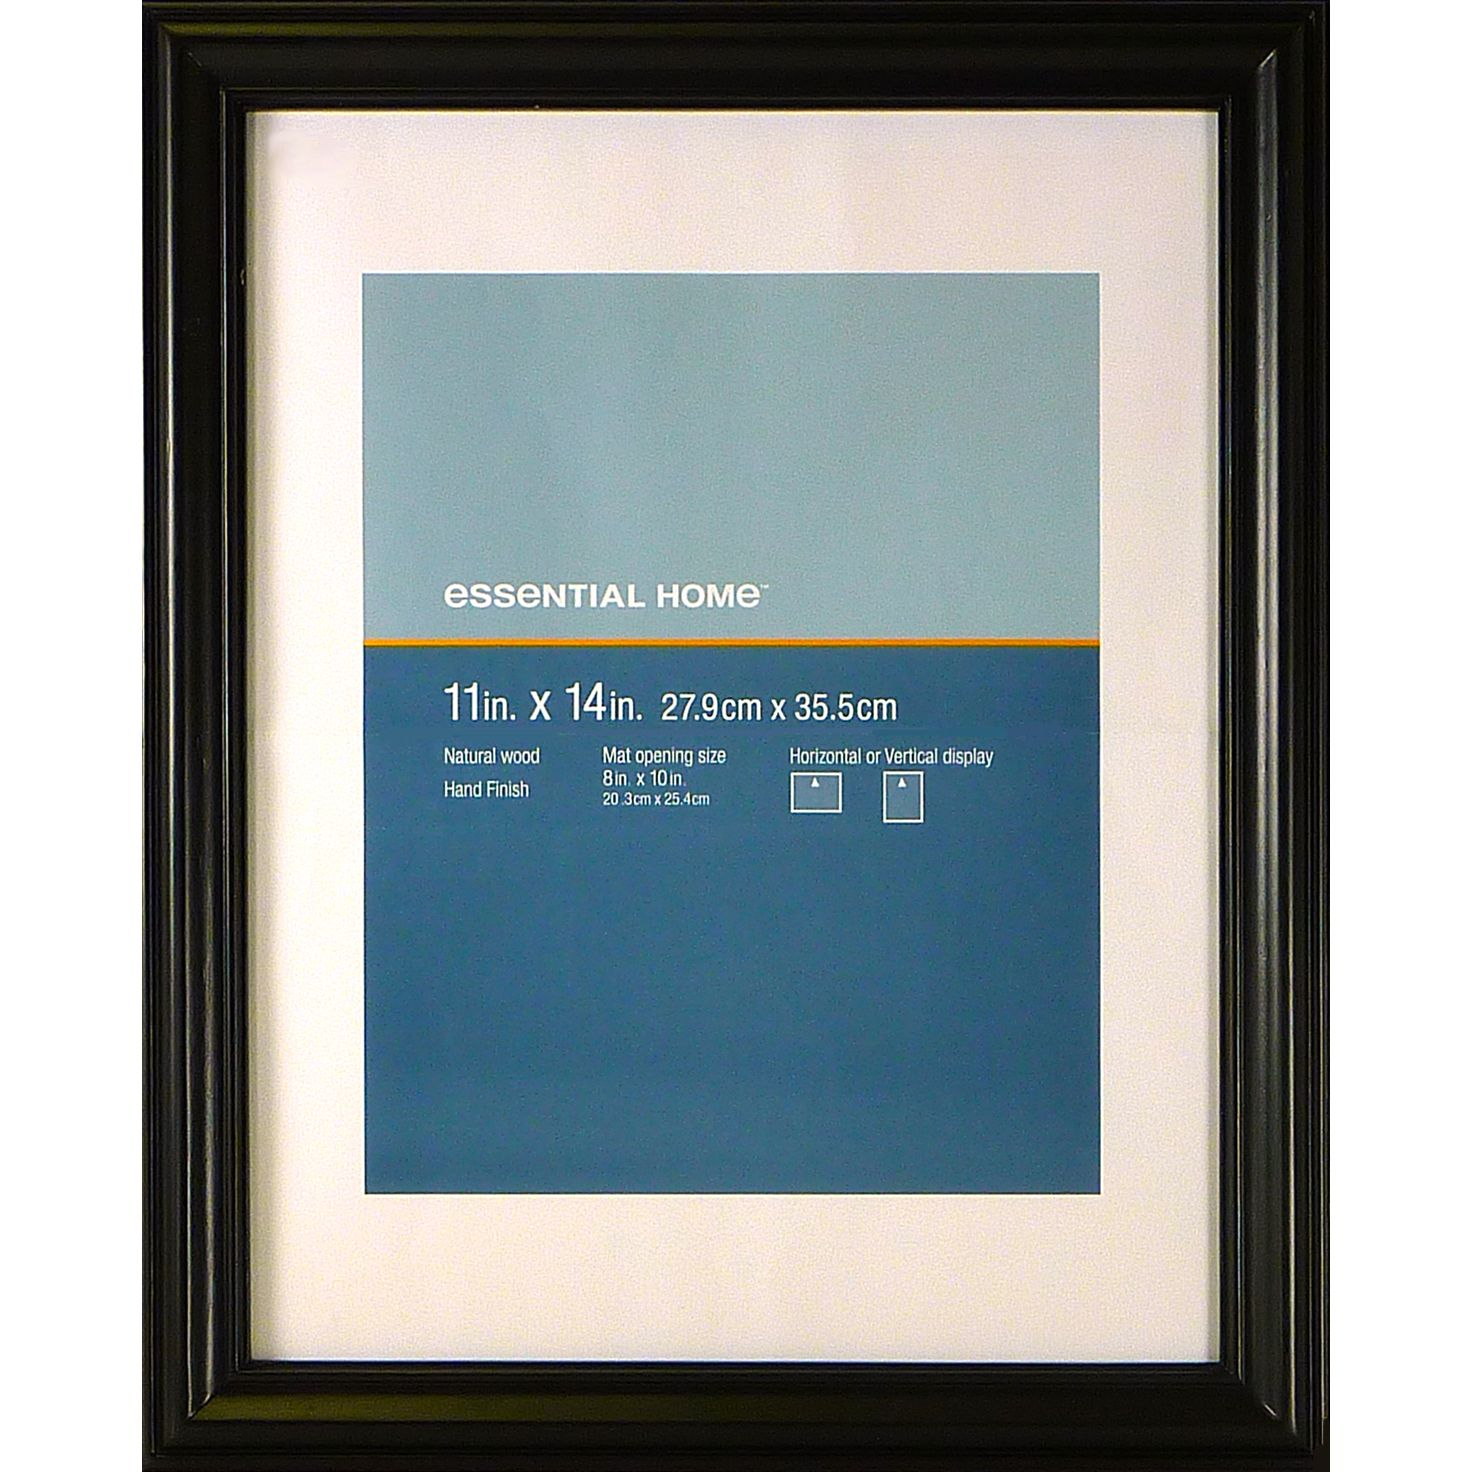 Essential Home Black Single Flute 11 X 14 Frame - Decor Decorative